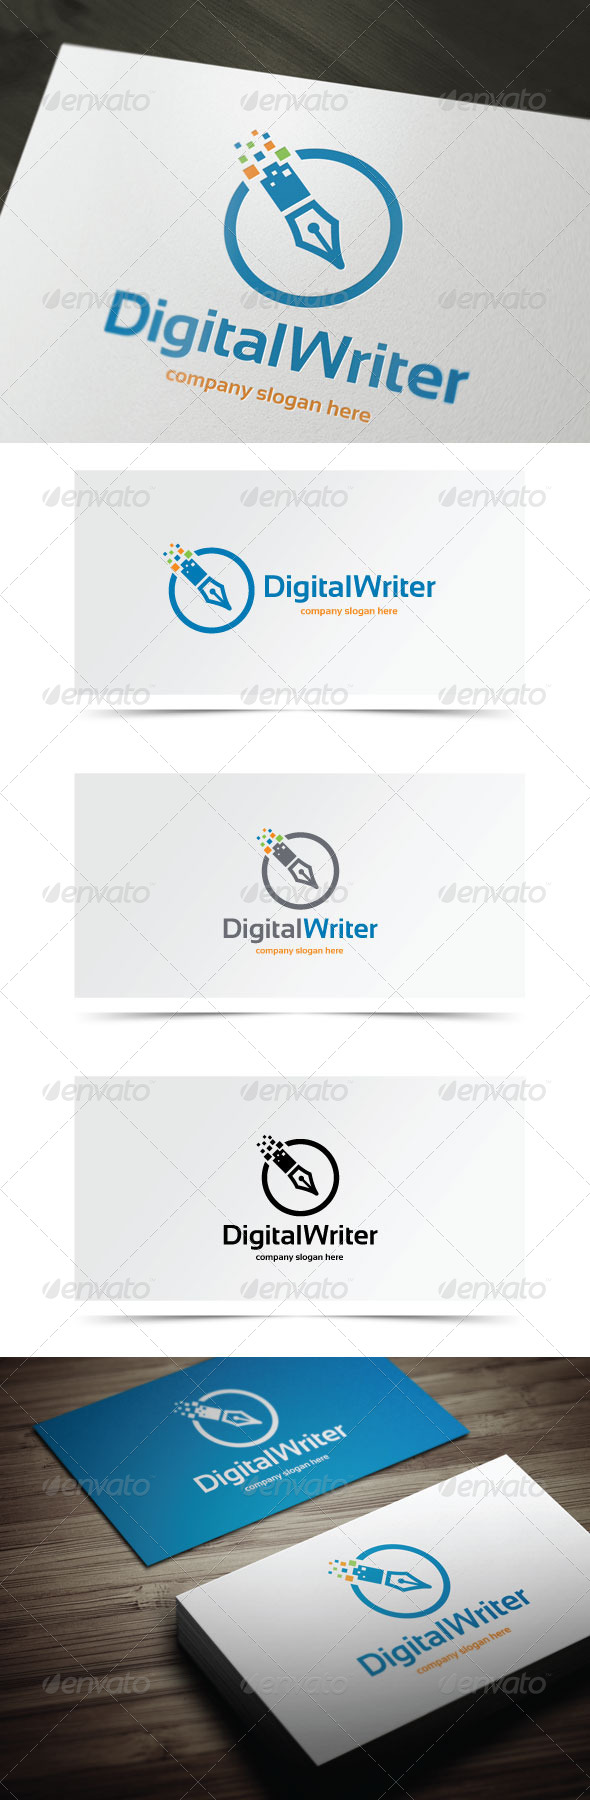 GraphicRiver Digital Writer 8429626